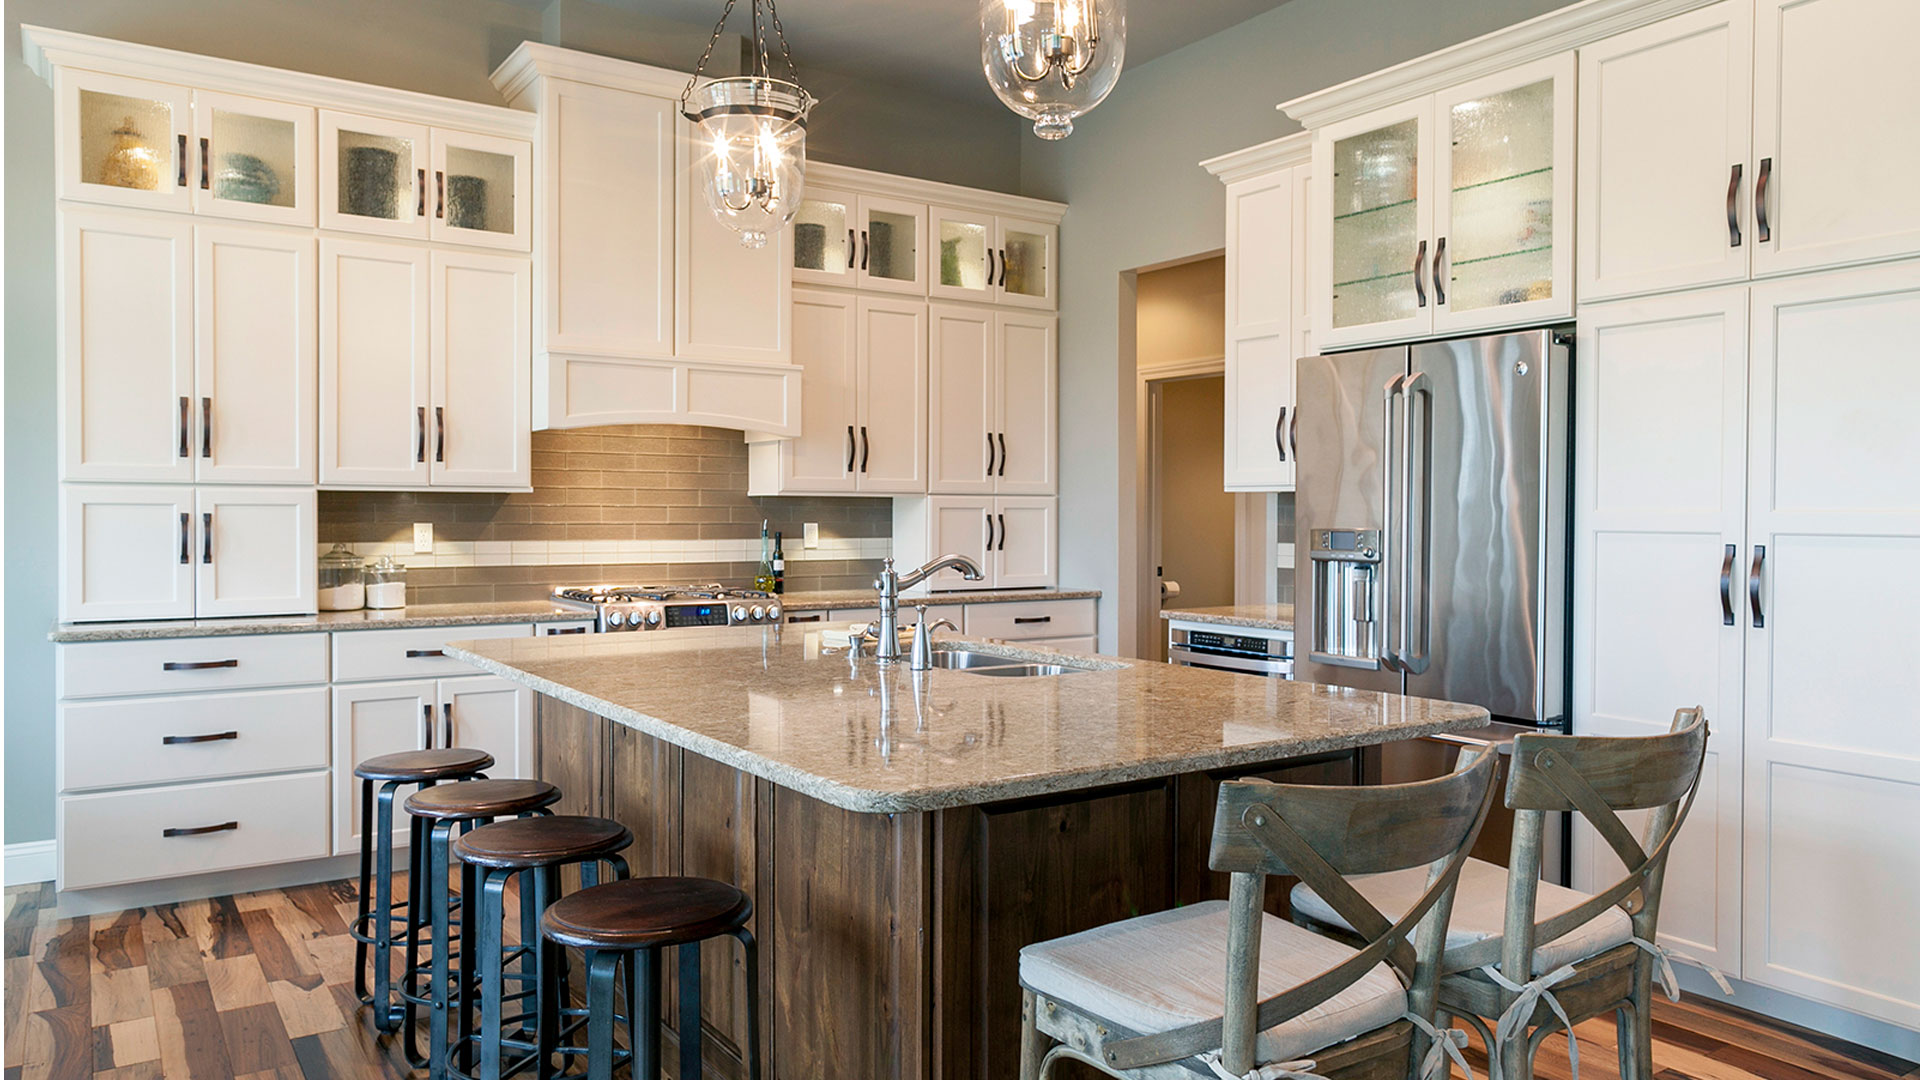 Custom Kitchen Cabinets for your Home Remodeling project in Hernando, FL